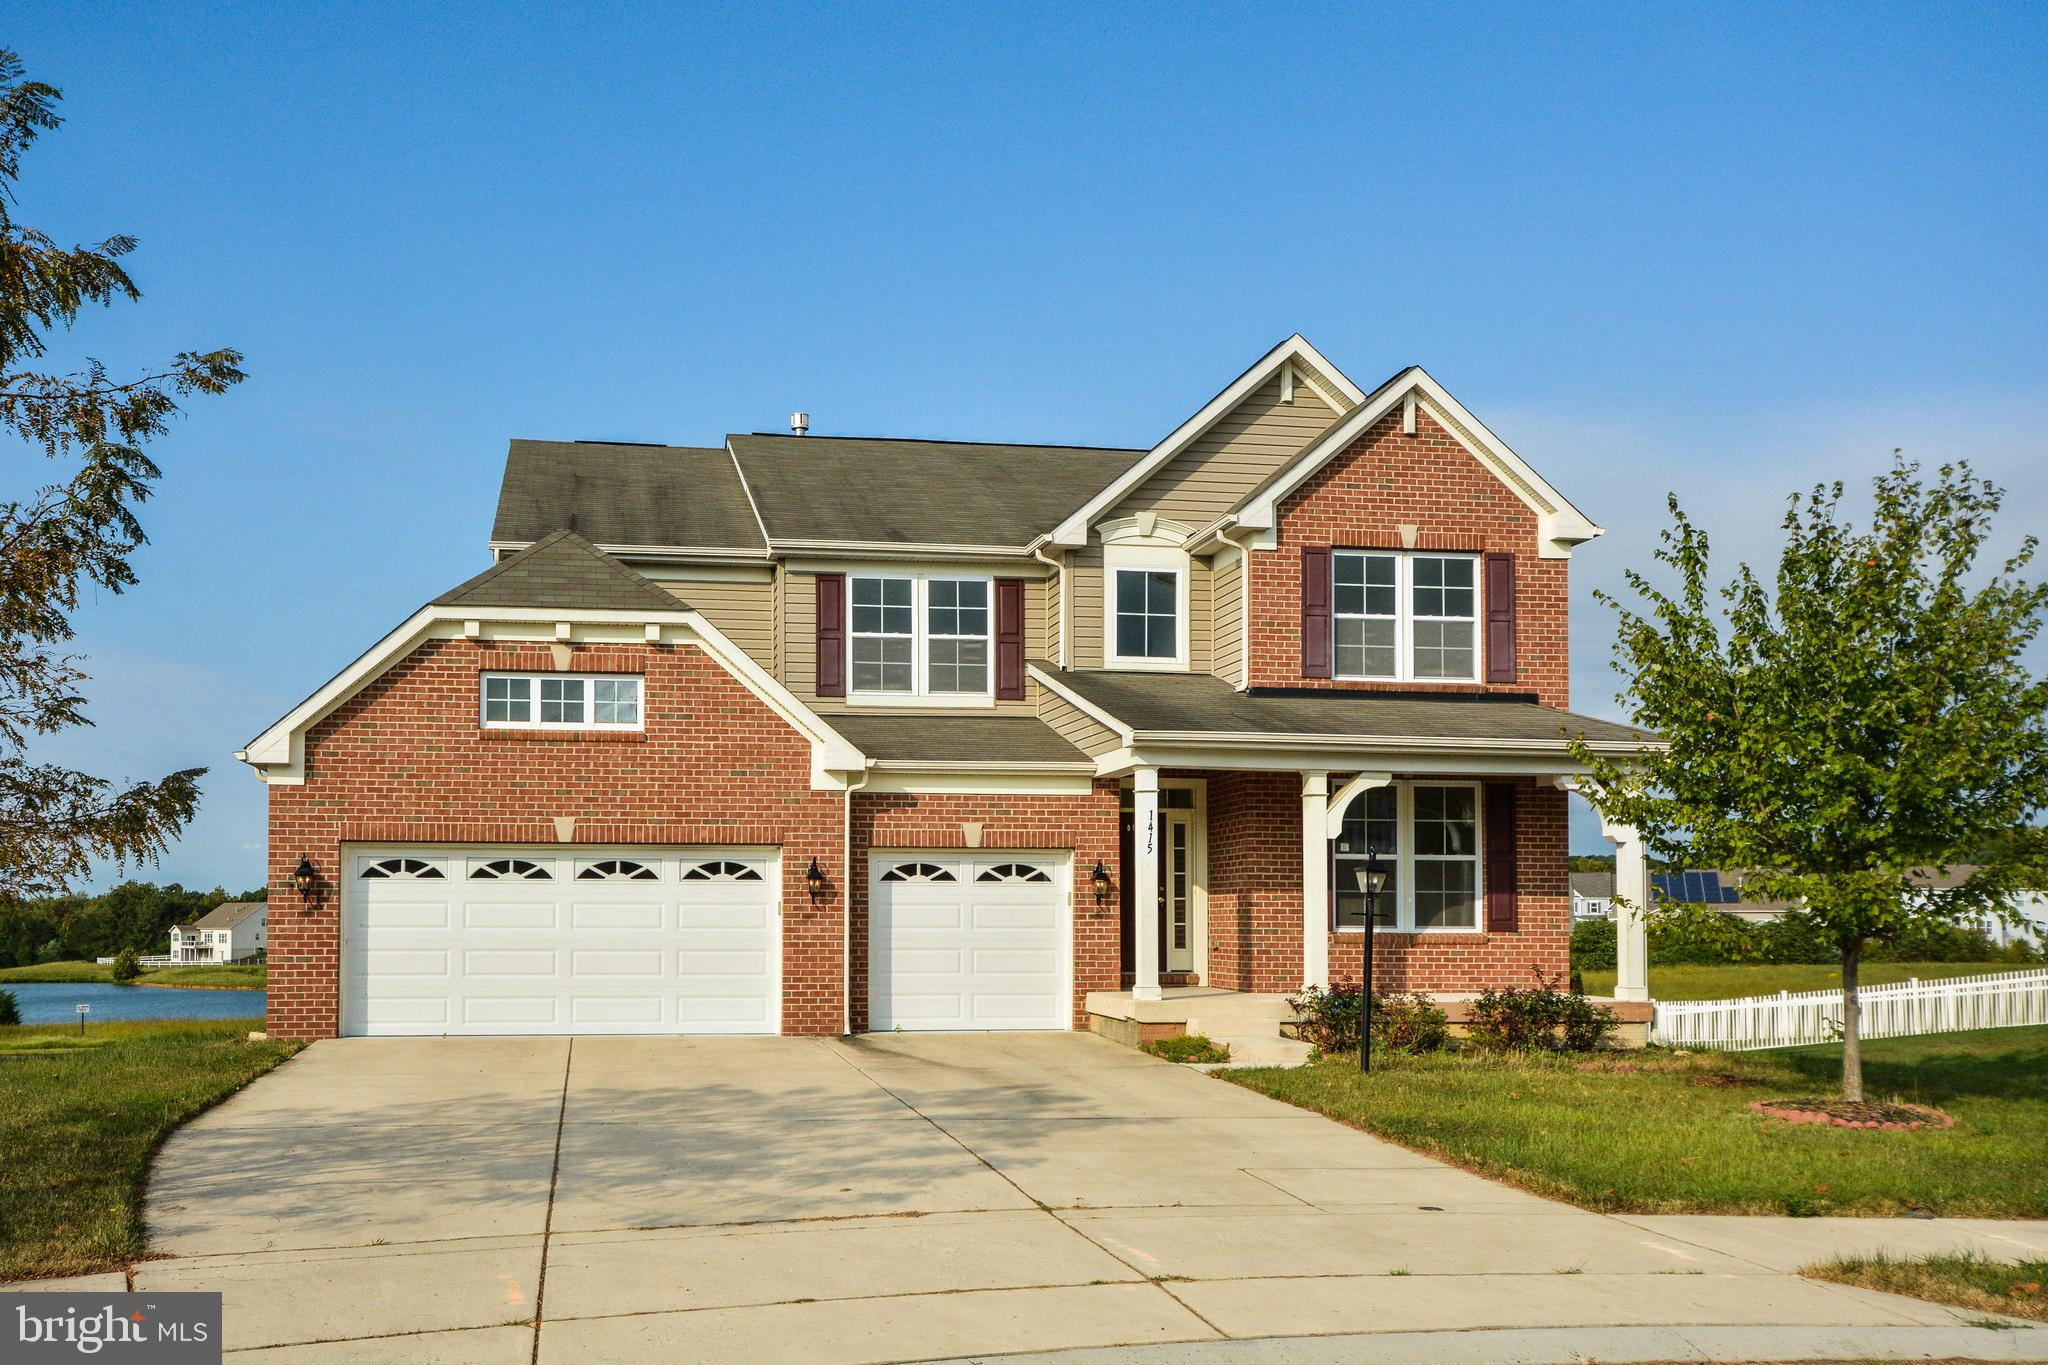 Beechtree Estates - Great home now available. The spacious colonial features 6 bedrooms, 3.5 baths,